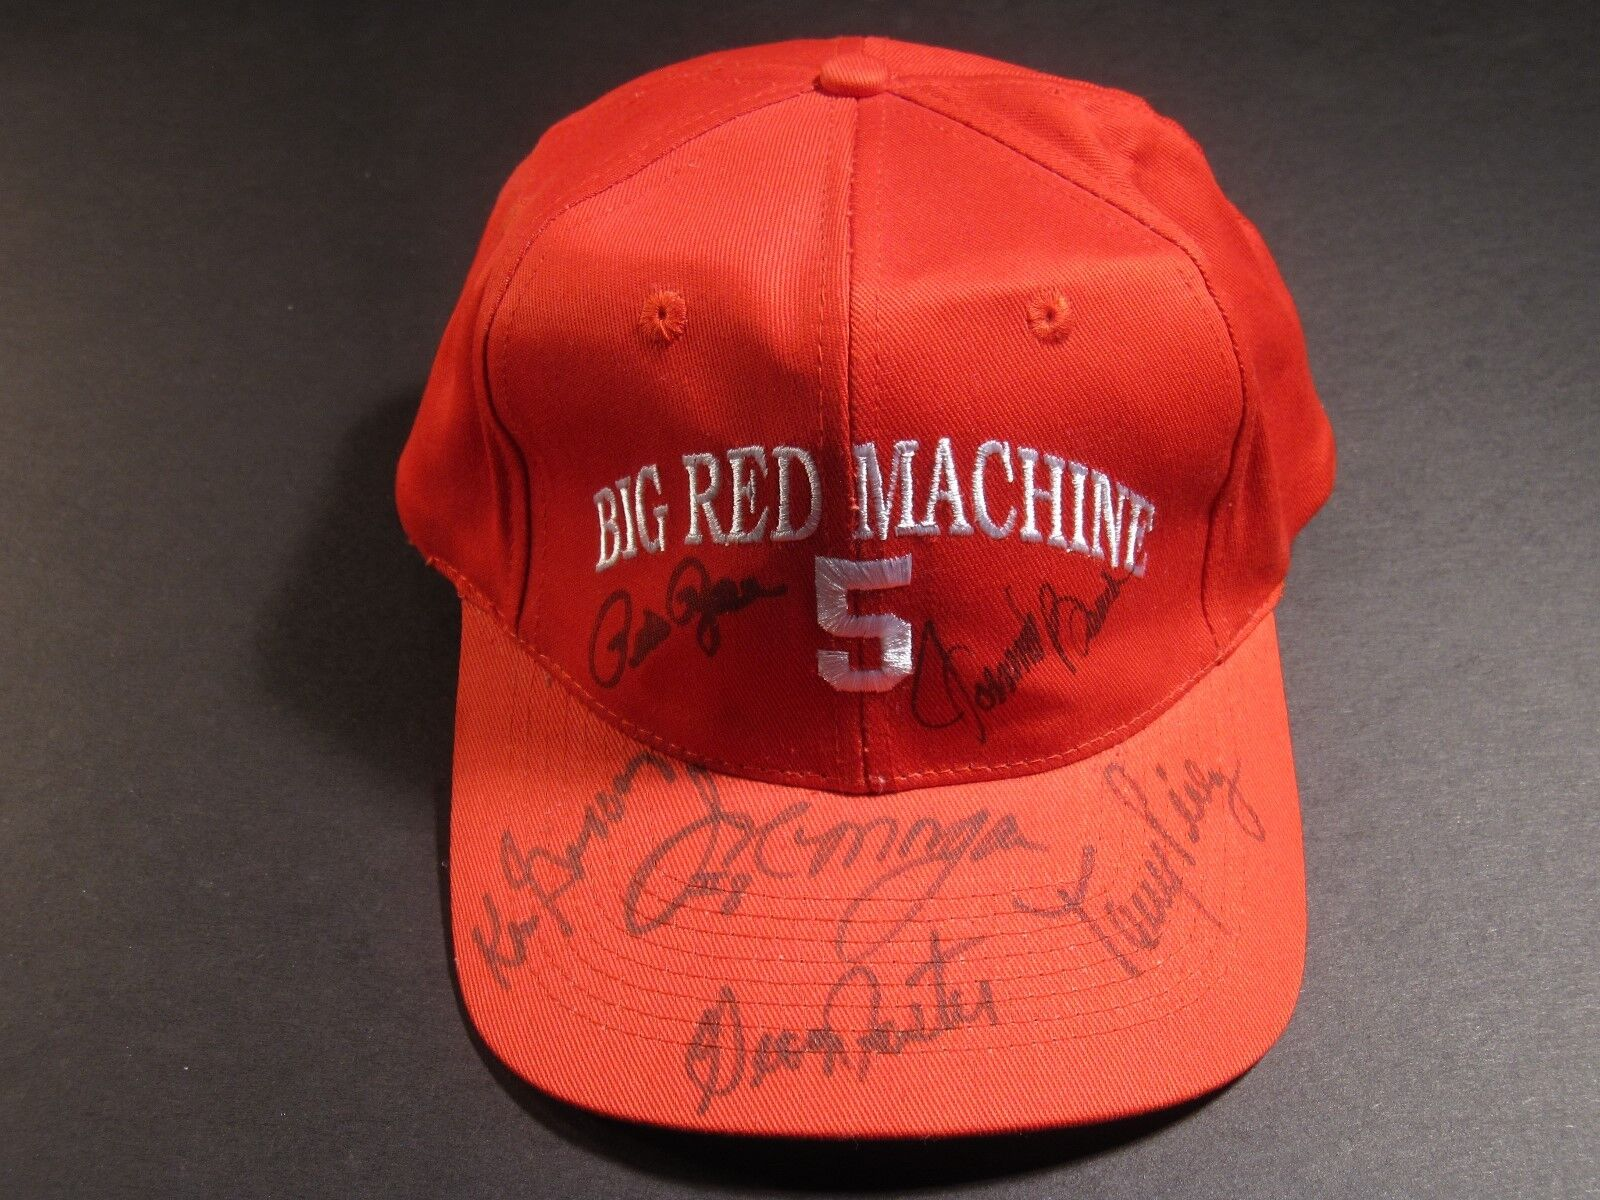 BIG RED MACHINE ROSE BENCH MORGAN PEREZ FOSTER GRIFFEY SIGNED AUTOGRAPH HAT PSA